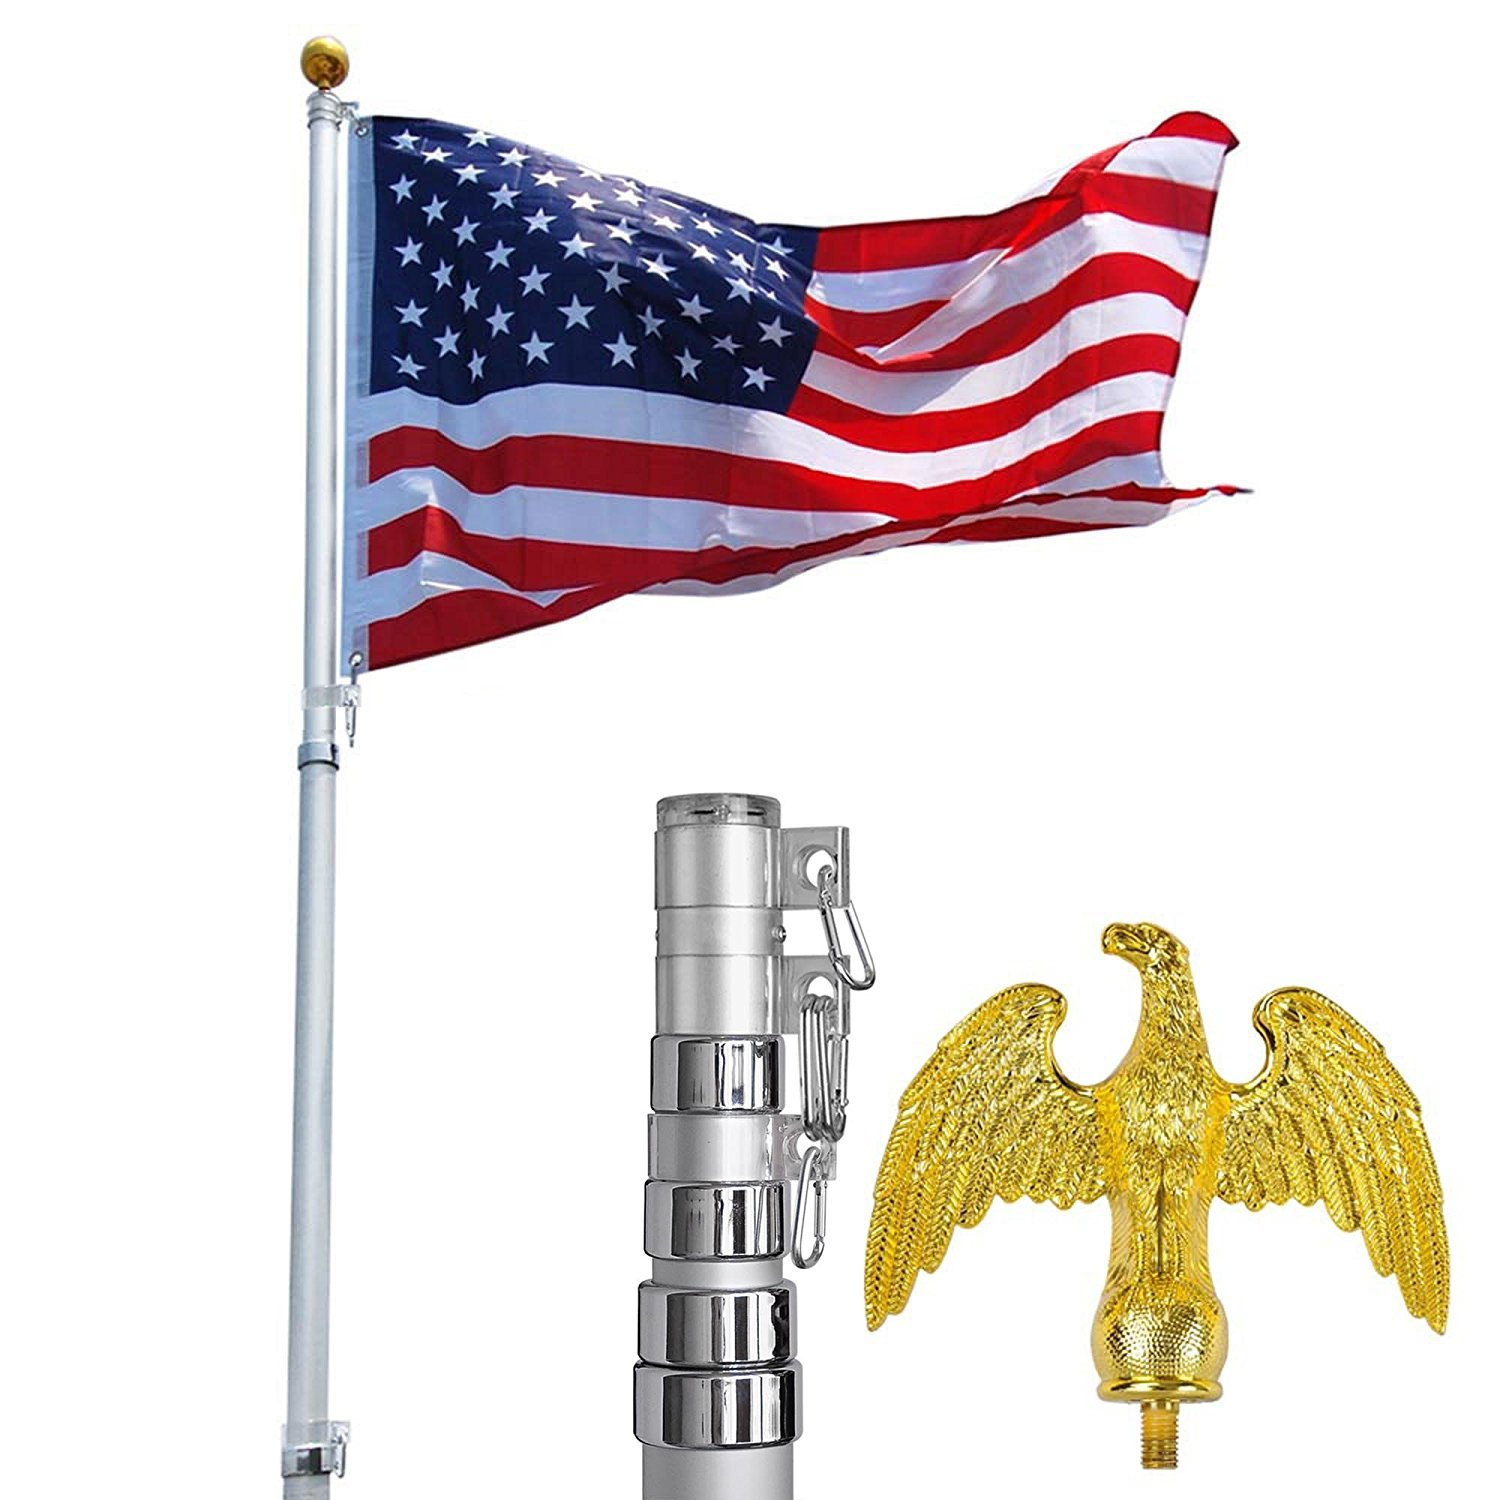 5-section 20ft Telescopic Aluminum Flag Pole + Golden Eagle Top Kit w/ Free Us Flag & Gold Ball Top Telescoping Flagpole